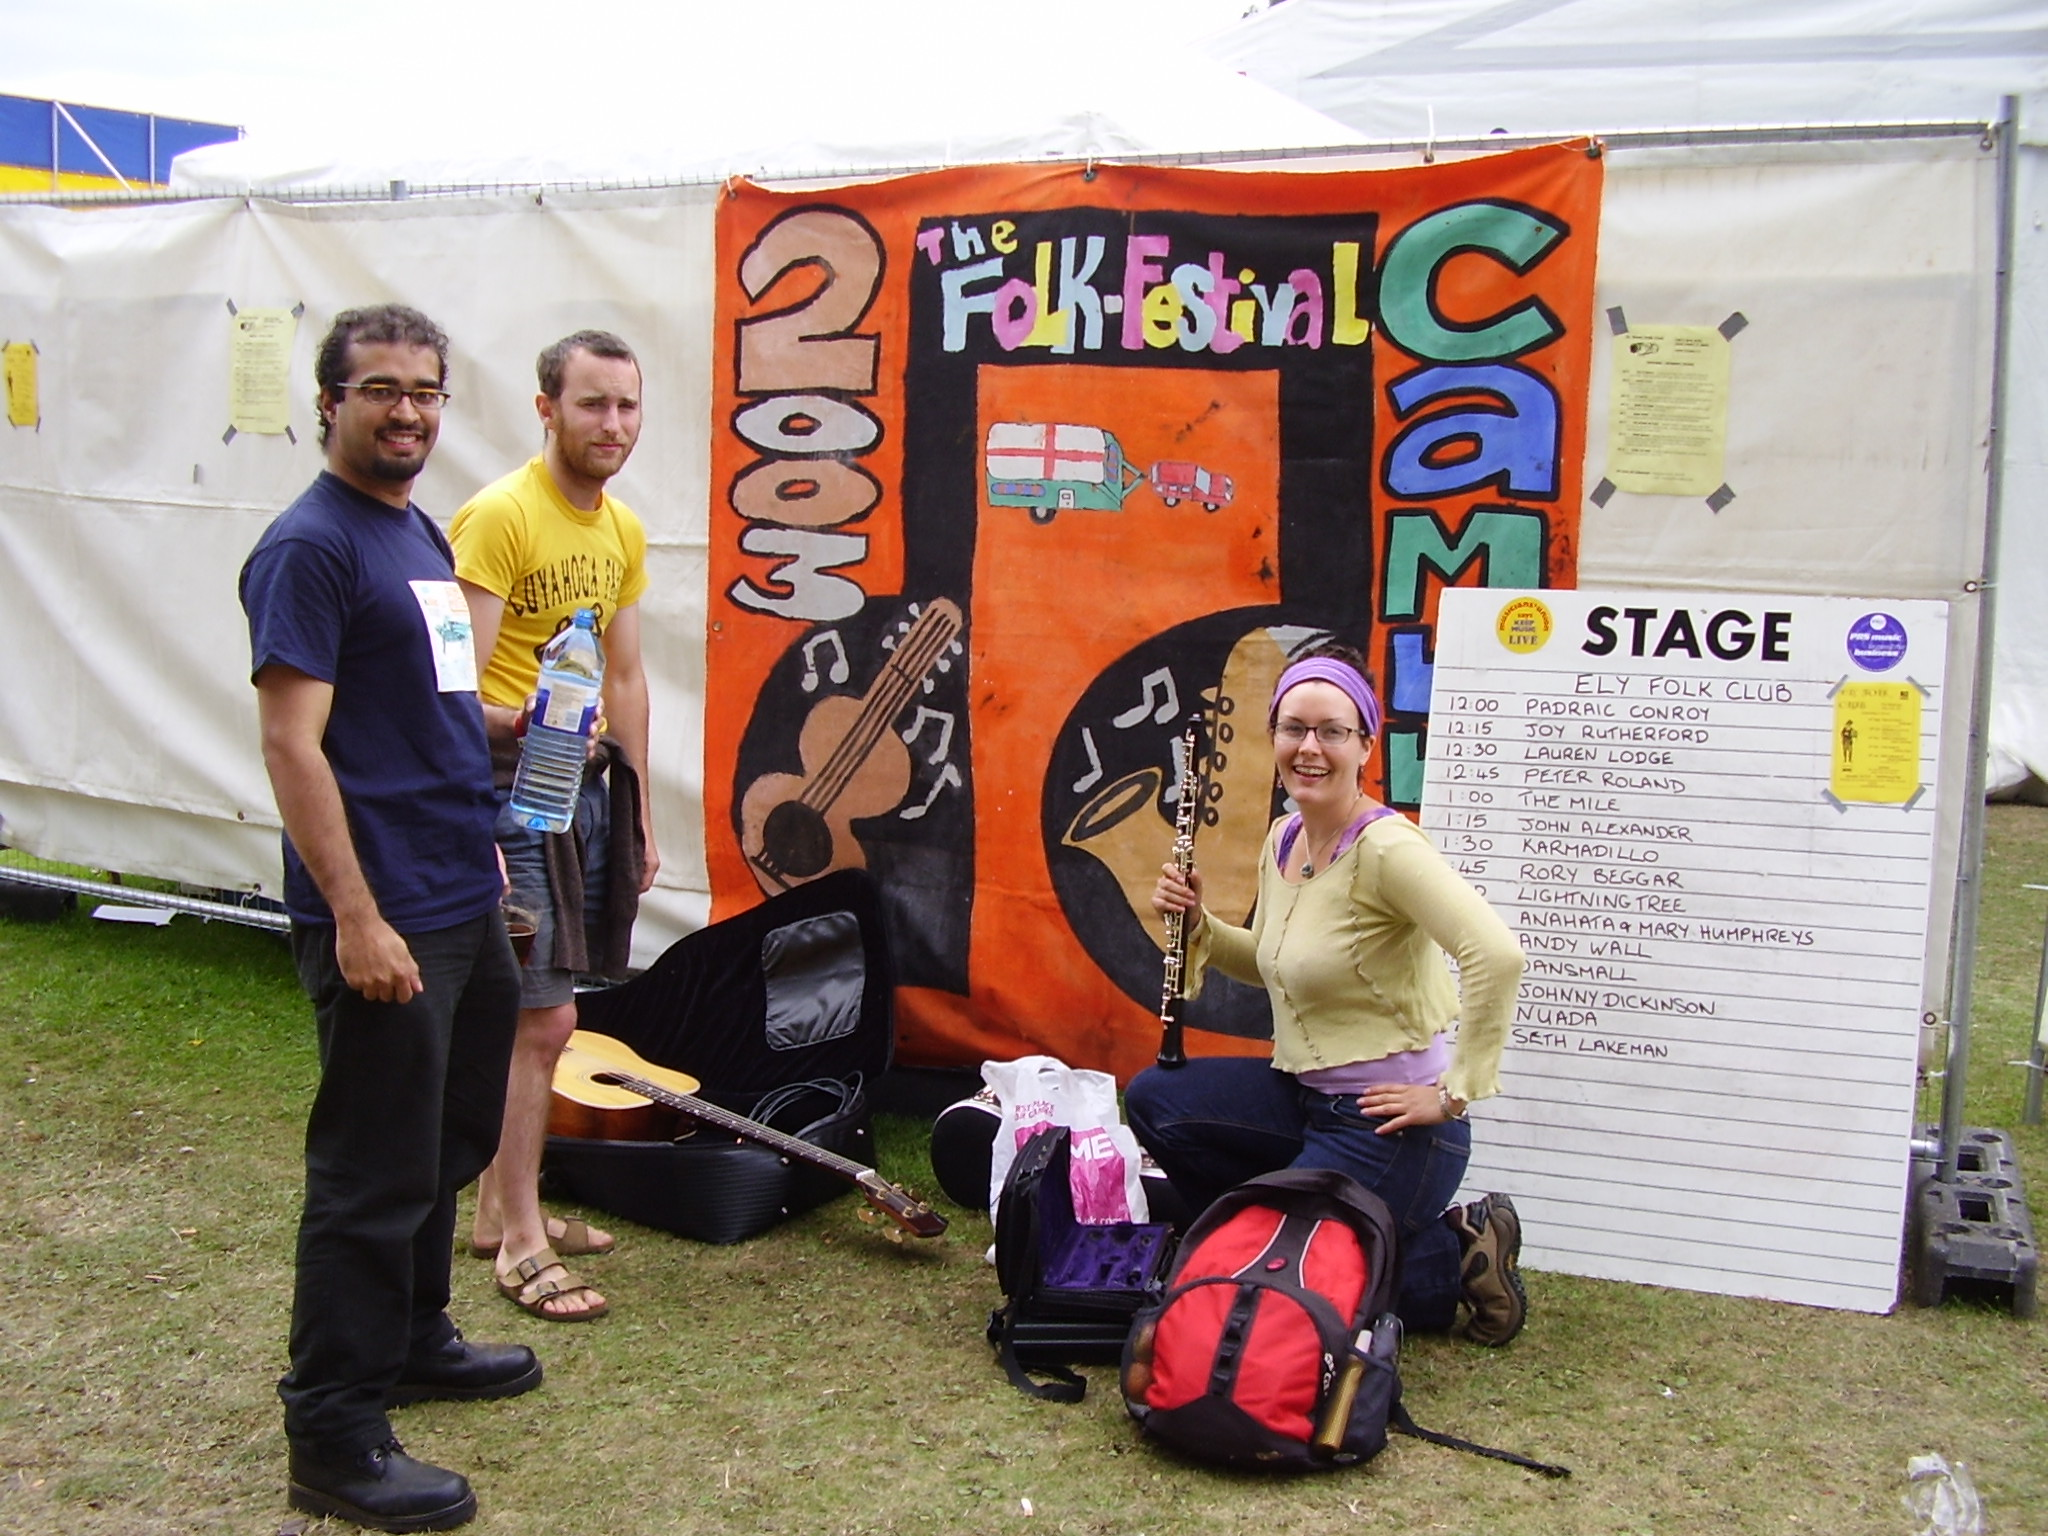 Karmadillo before playing Cambridge Folk Festival 2005